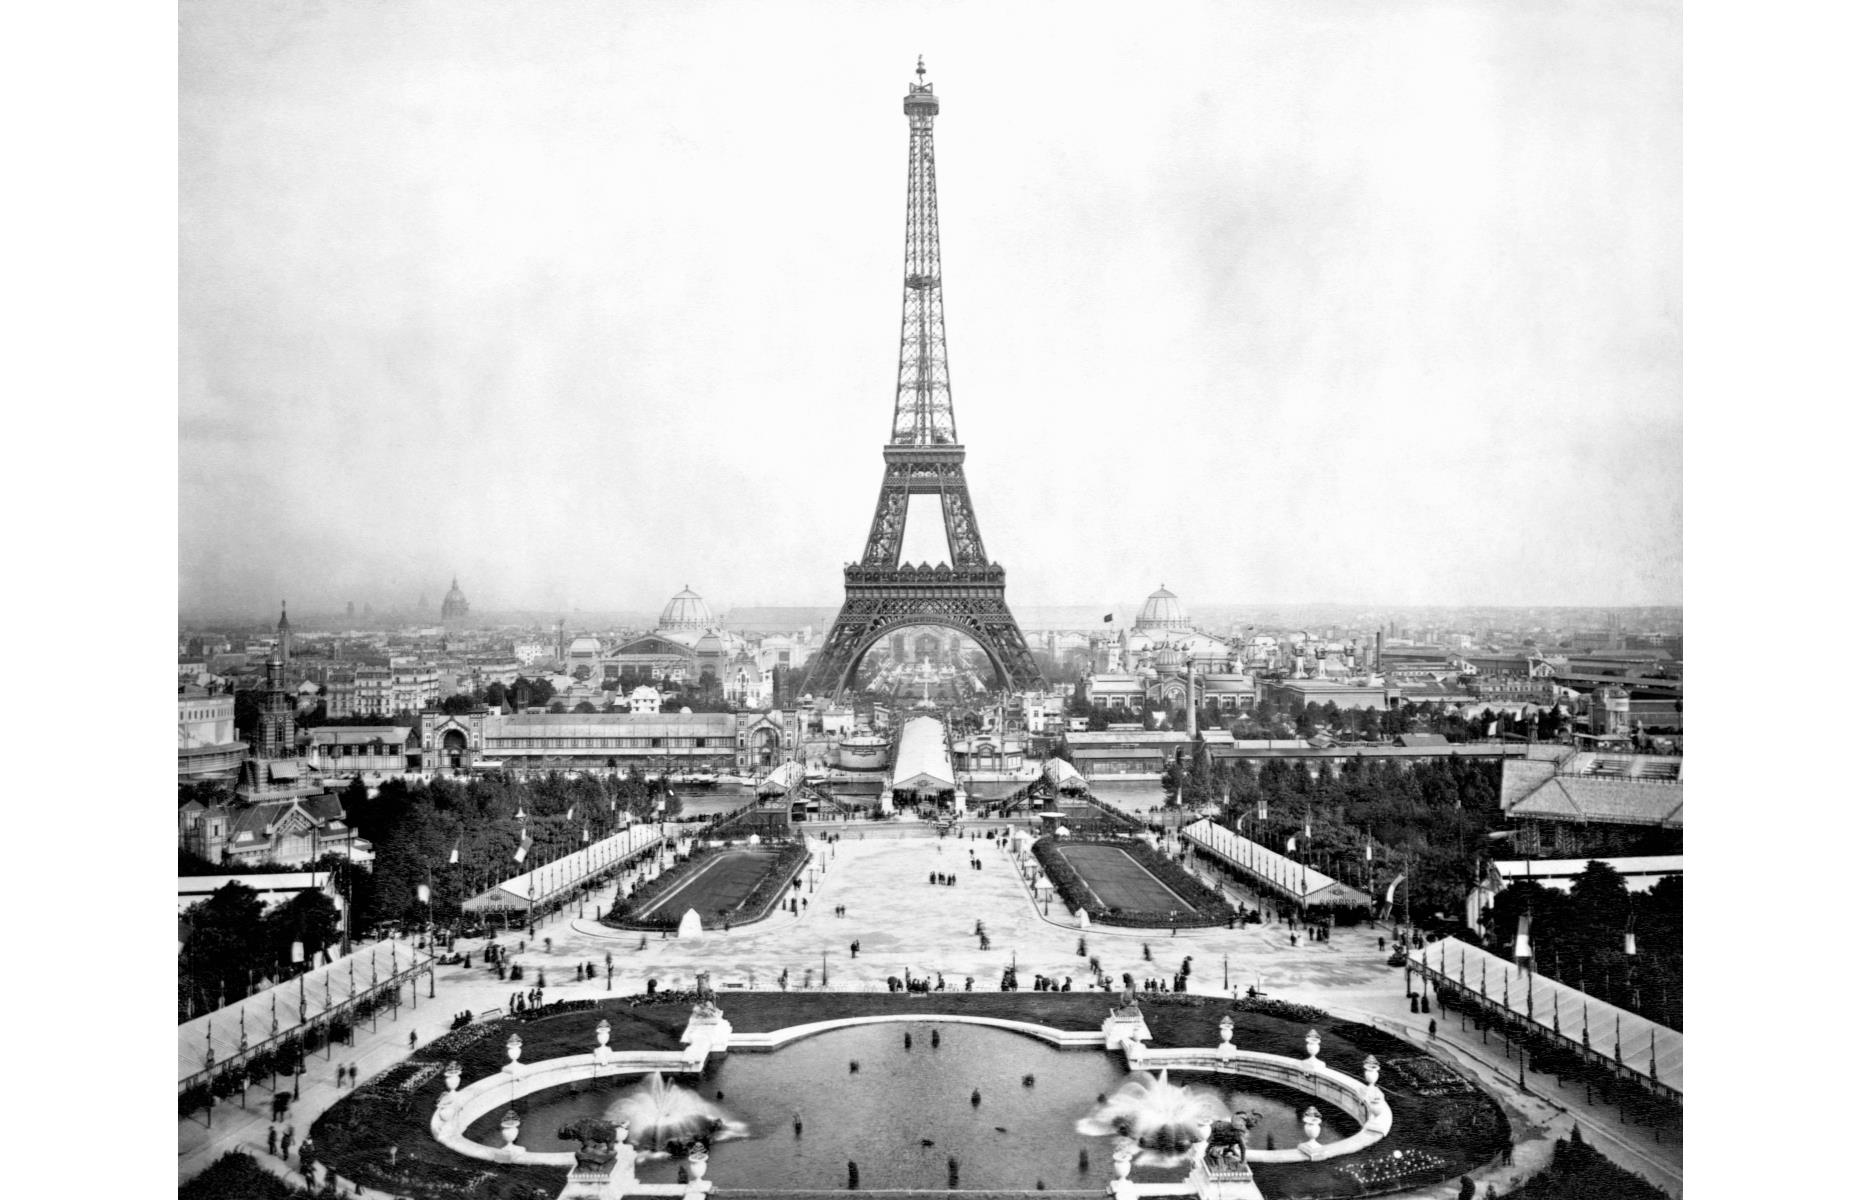 Slide 7 of 51: The most recognizable feature of the Paris skyline was built between 1887 and 1889, completed in time for the Paris World's Fair of 1889 – although it was only supposed to be a temporary structure. Its original licensing rights were only set to last 20 years and it was almost torn down in 1909, but city officials voted to keep it after recognizing its value as a radio station. Pictured here in 1889,the Eiffel Tower now typicallyattracts around sevenmillion visitors each year.